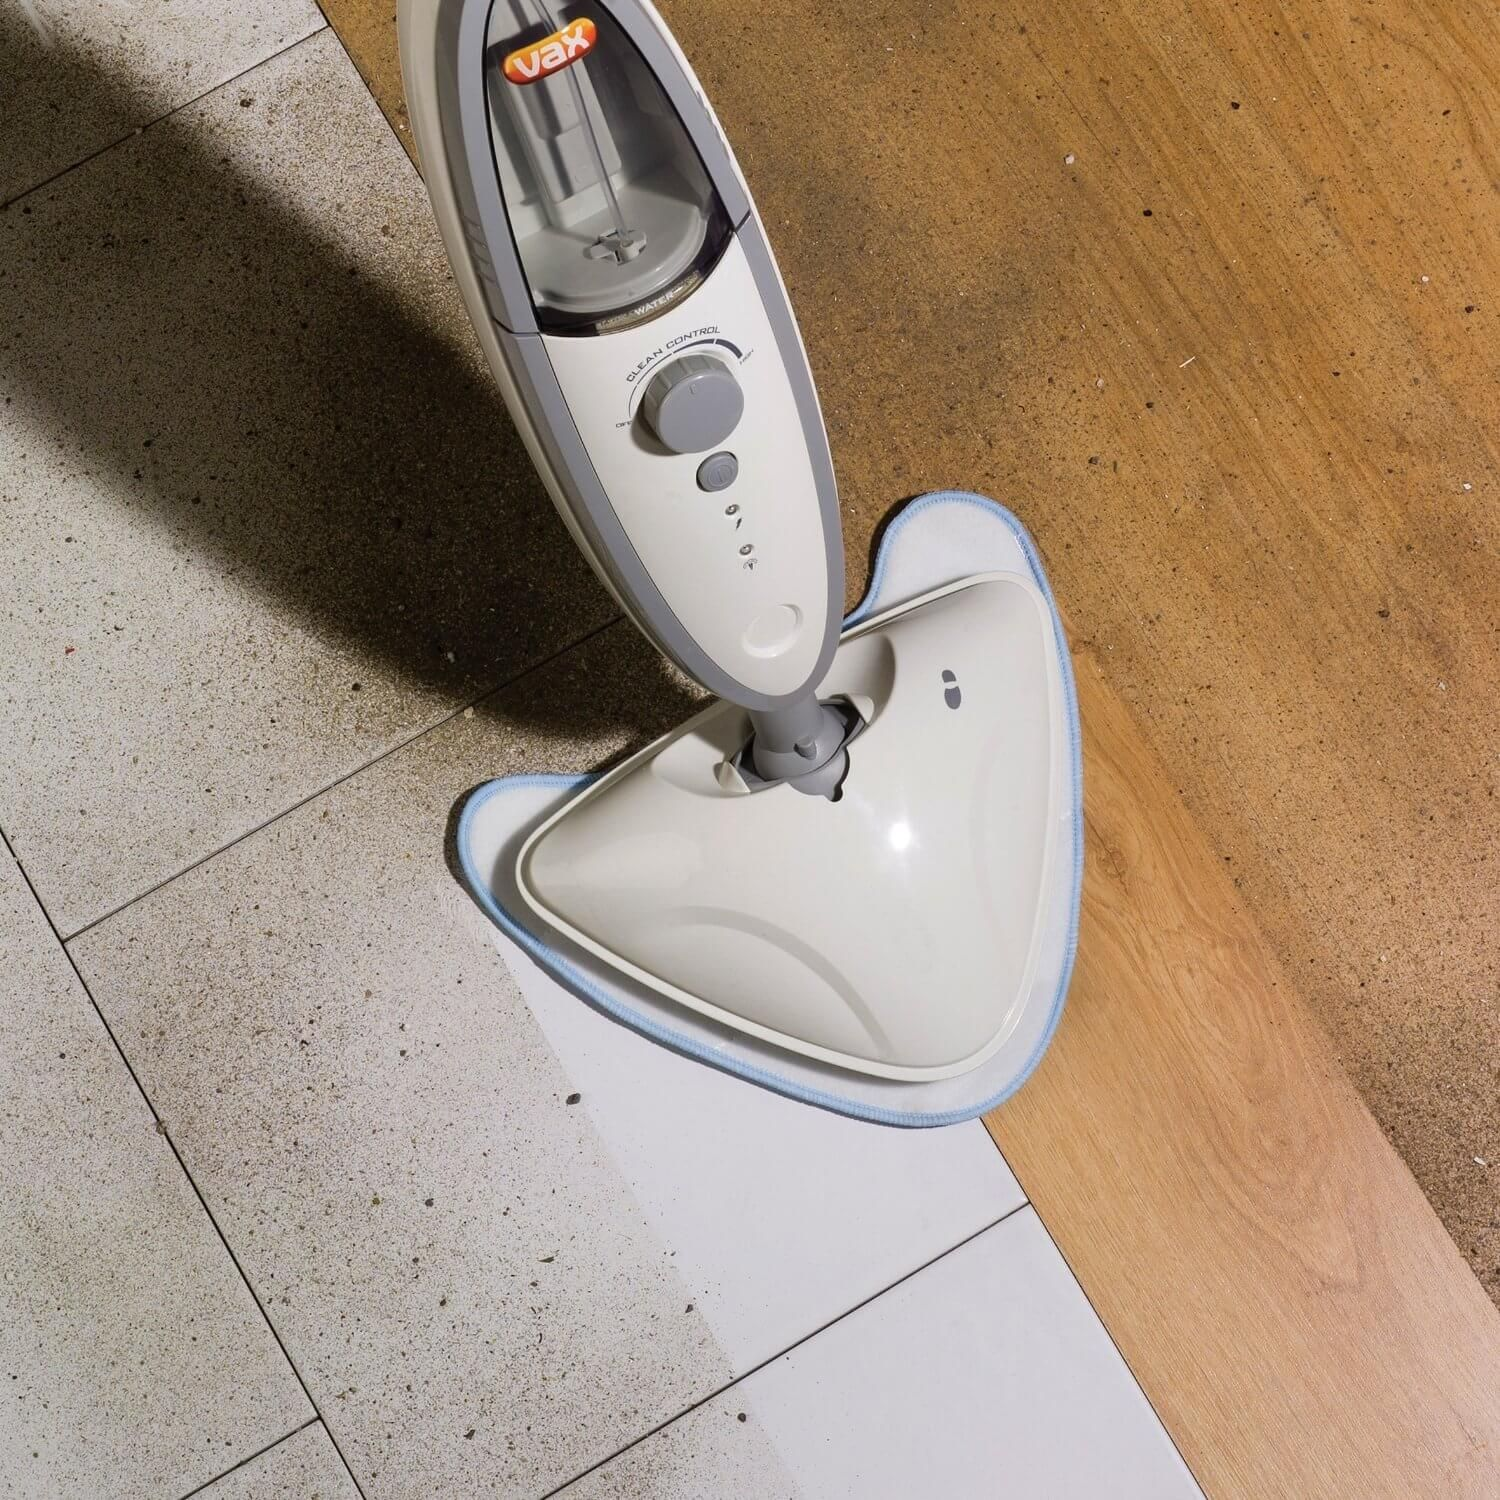 Best shark mop for tile floors httpnextsoft21 pinterest steam mop tile floors whether the subfloor is capable of supporting tile you need to learn before you are able to use a ce dailygadgetfo Choice Image